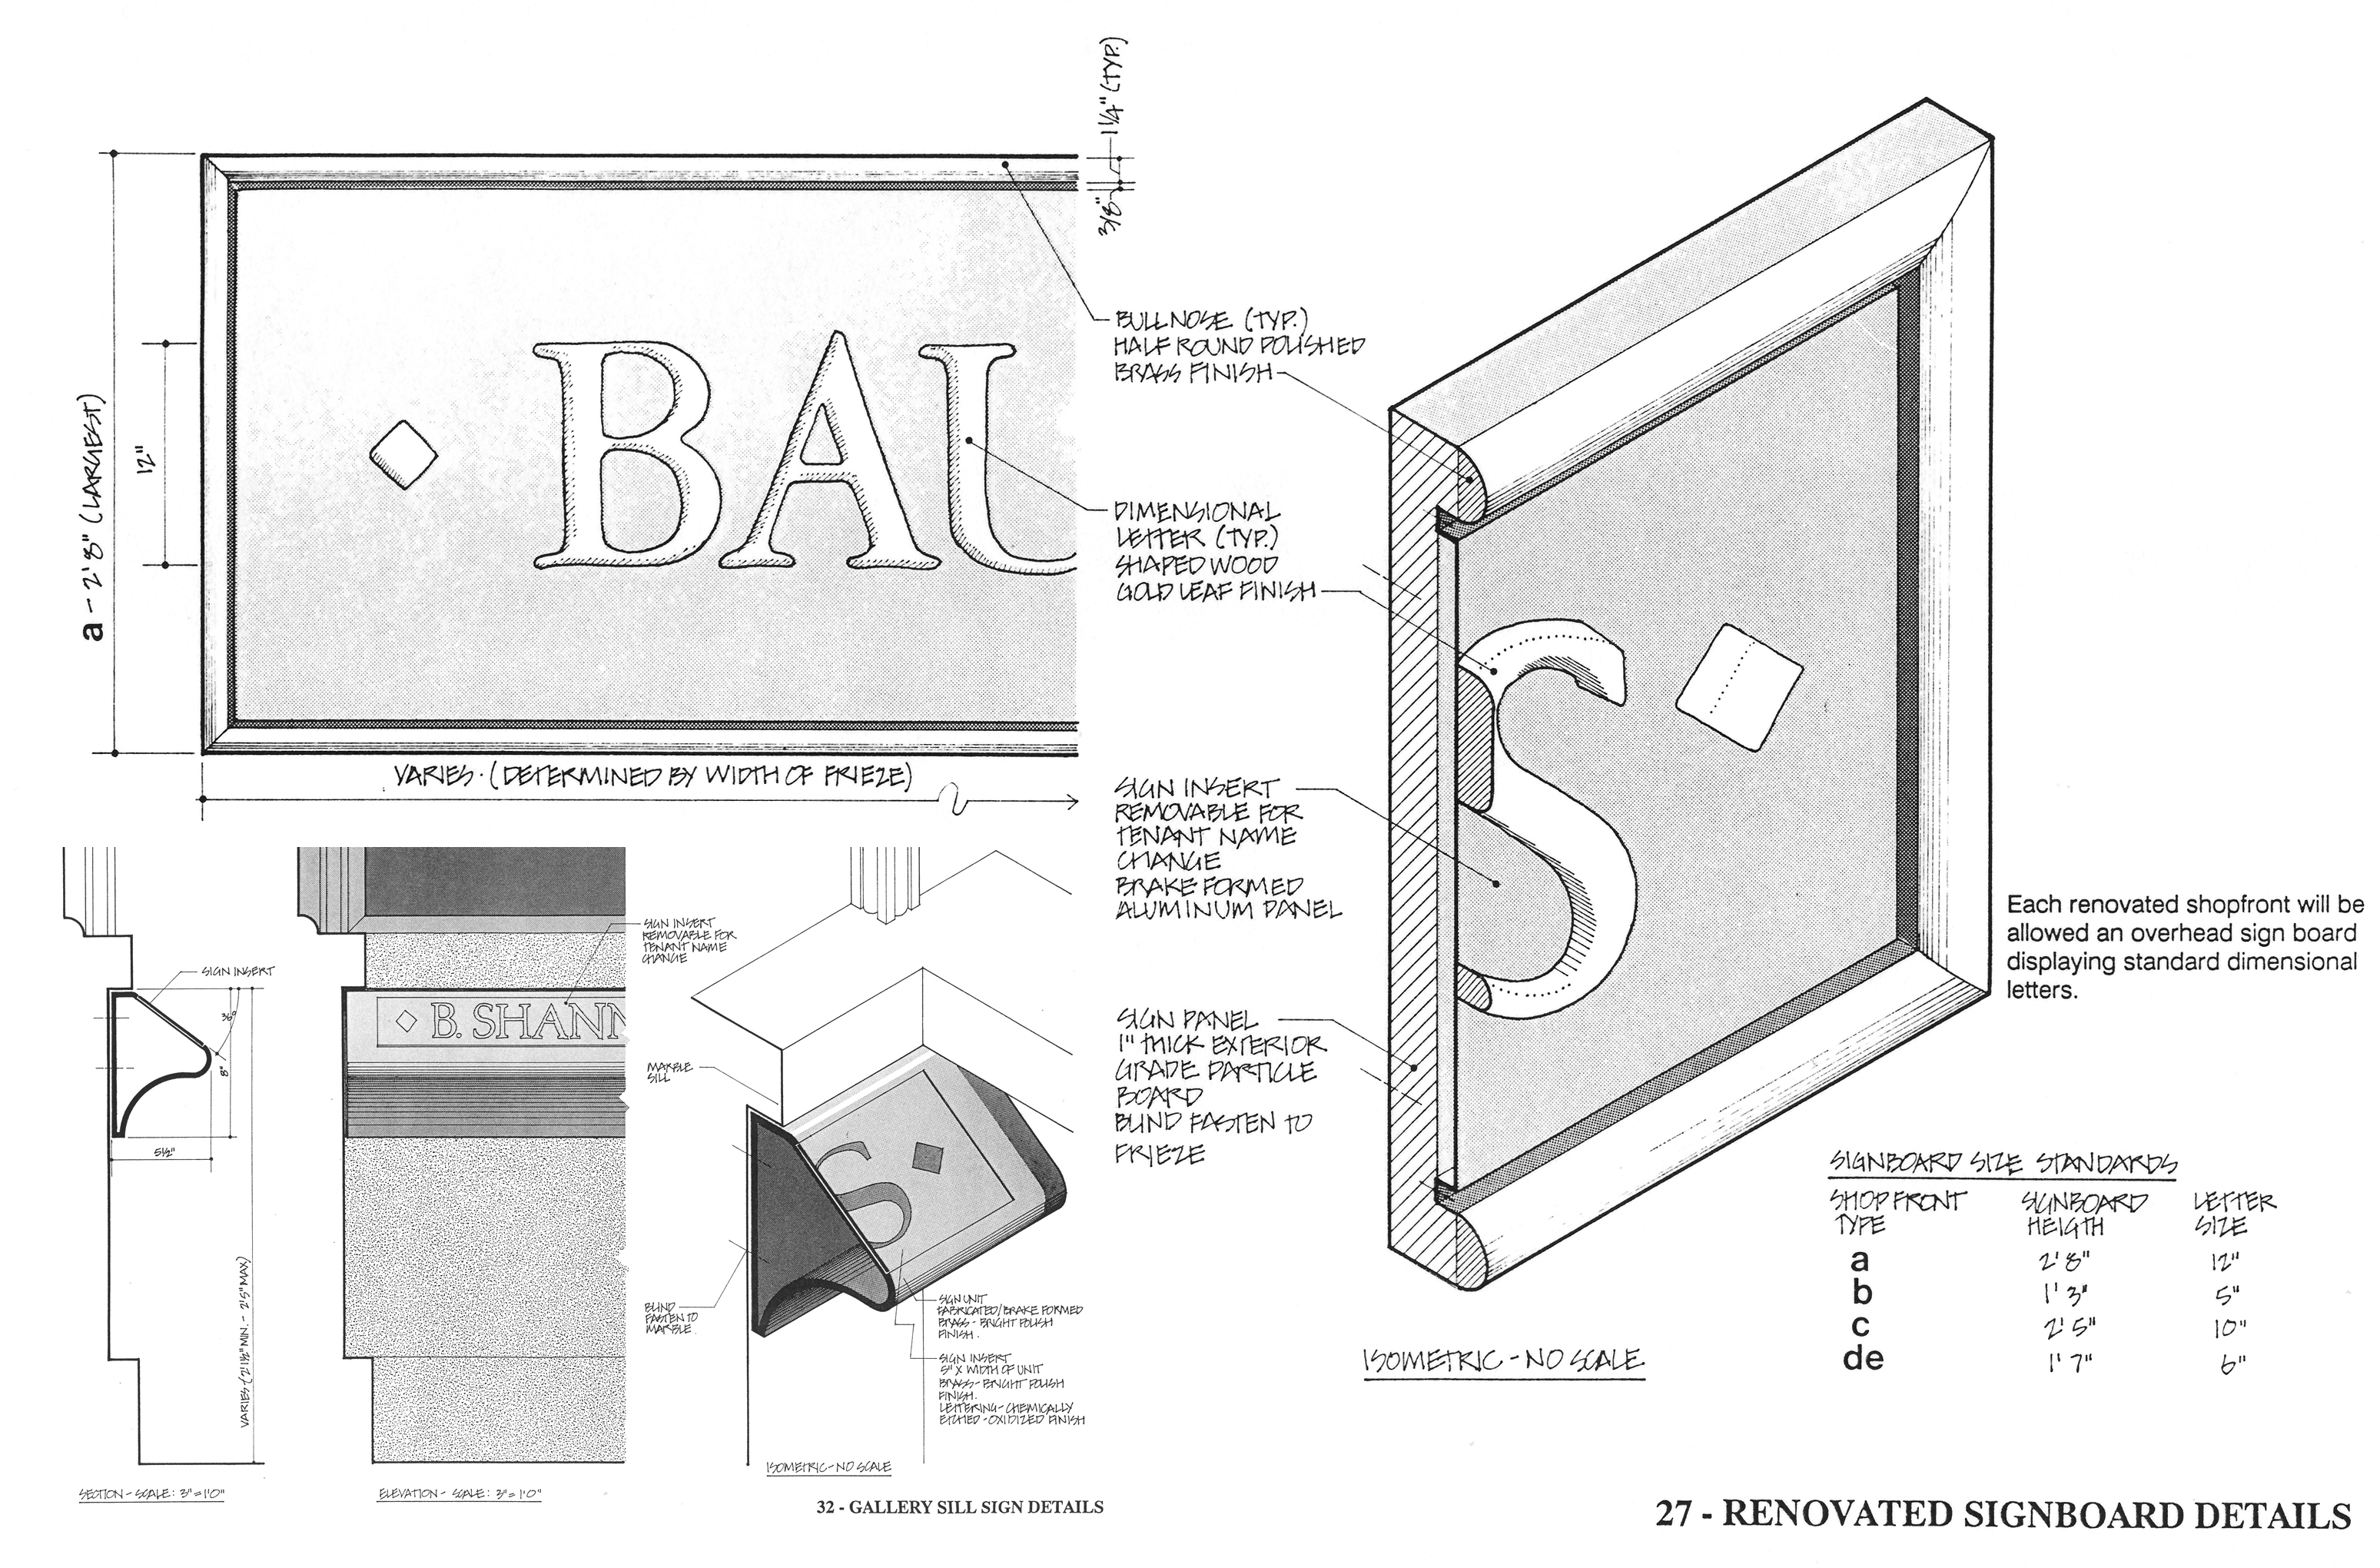 Mechanical drawings of signage details.